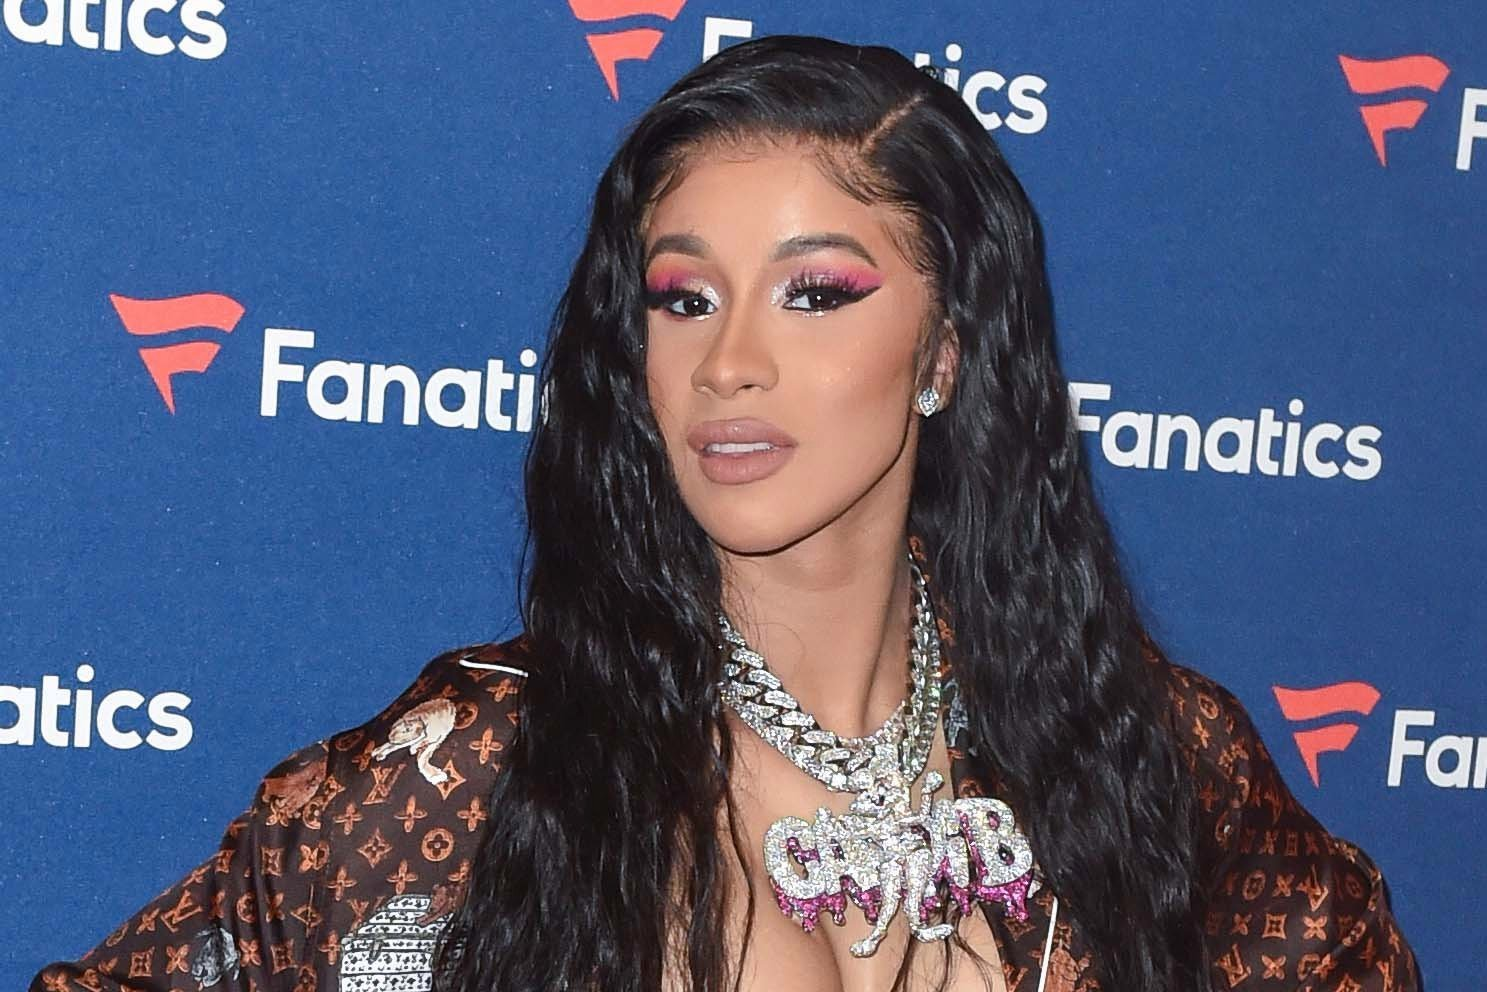 Cardi B quits Instagram following drama over her Grammy win